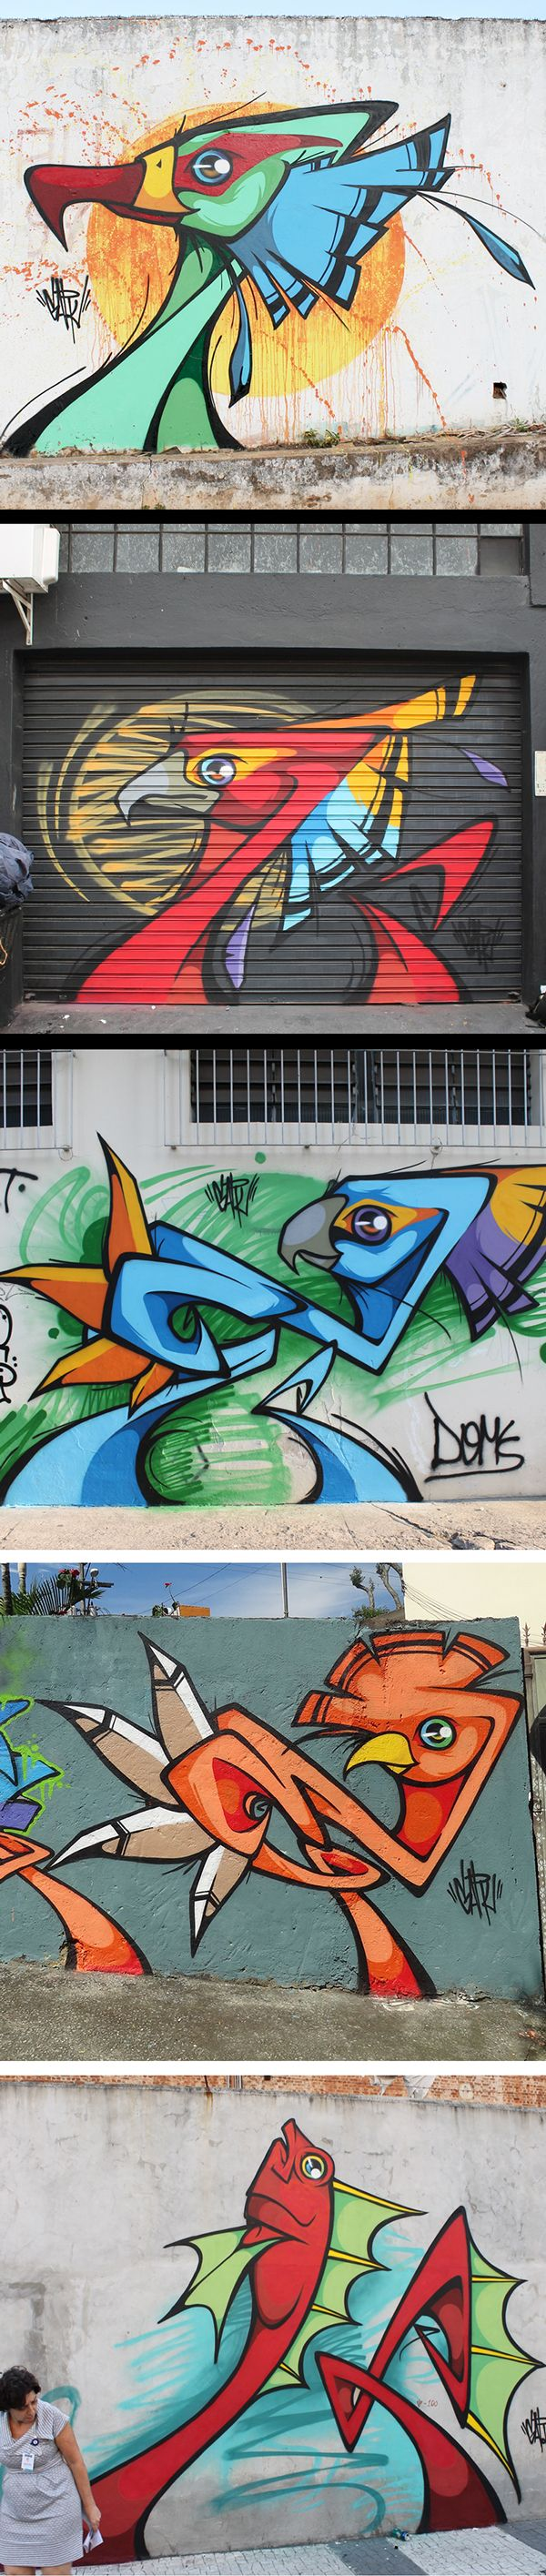 Best Graffiti Street Art Images On Pinterest Cities - Clever free bird see graffiti spotted in chicago leads to a creative surprise